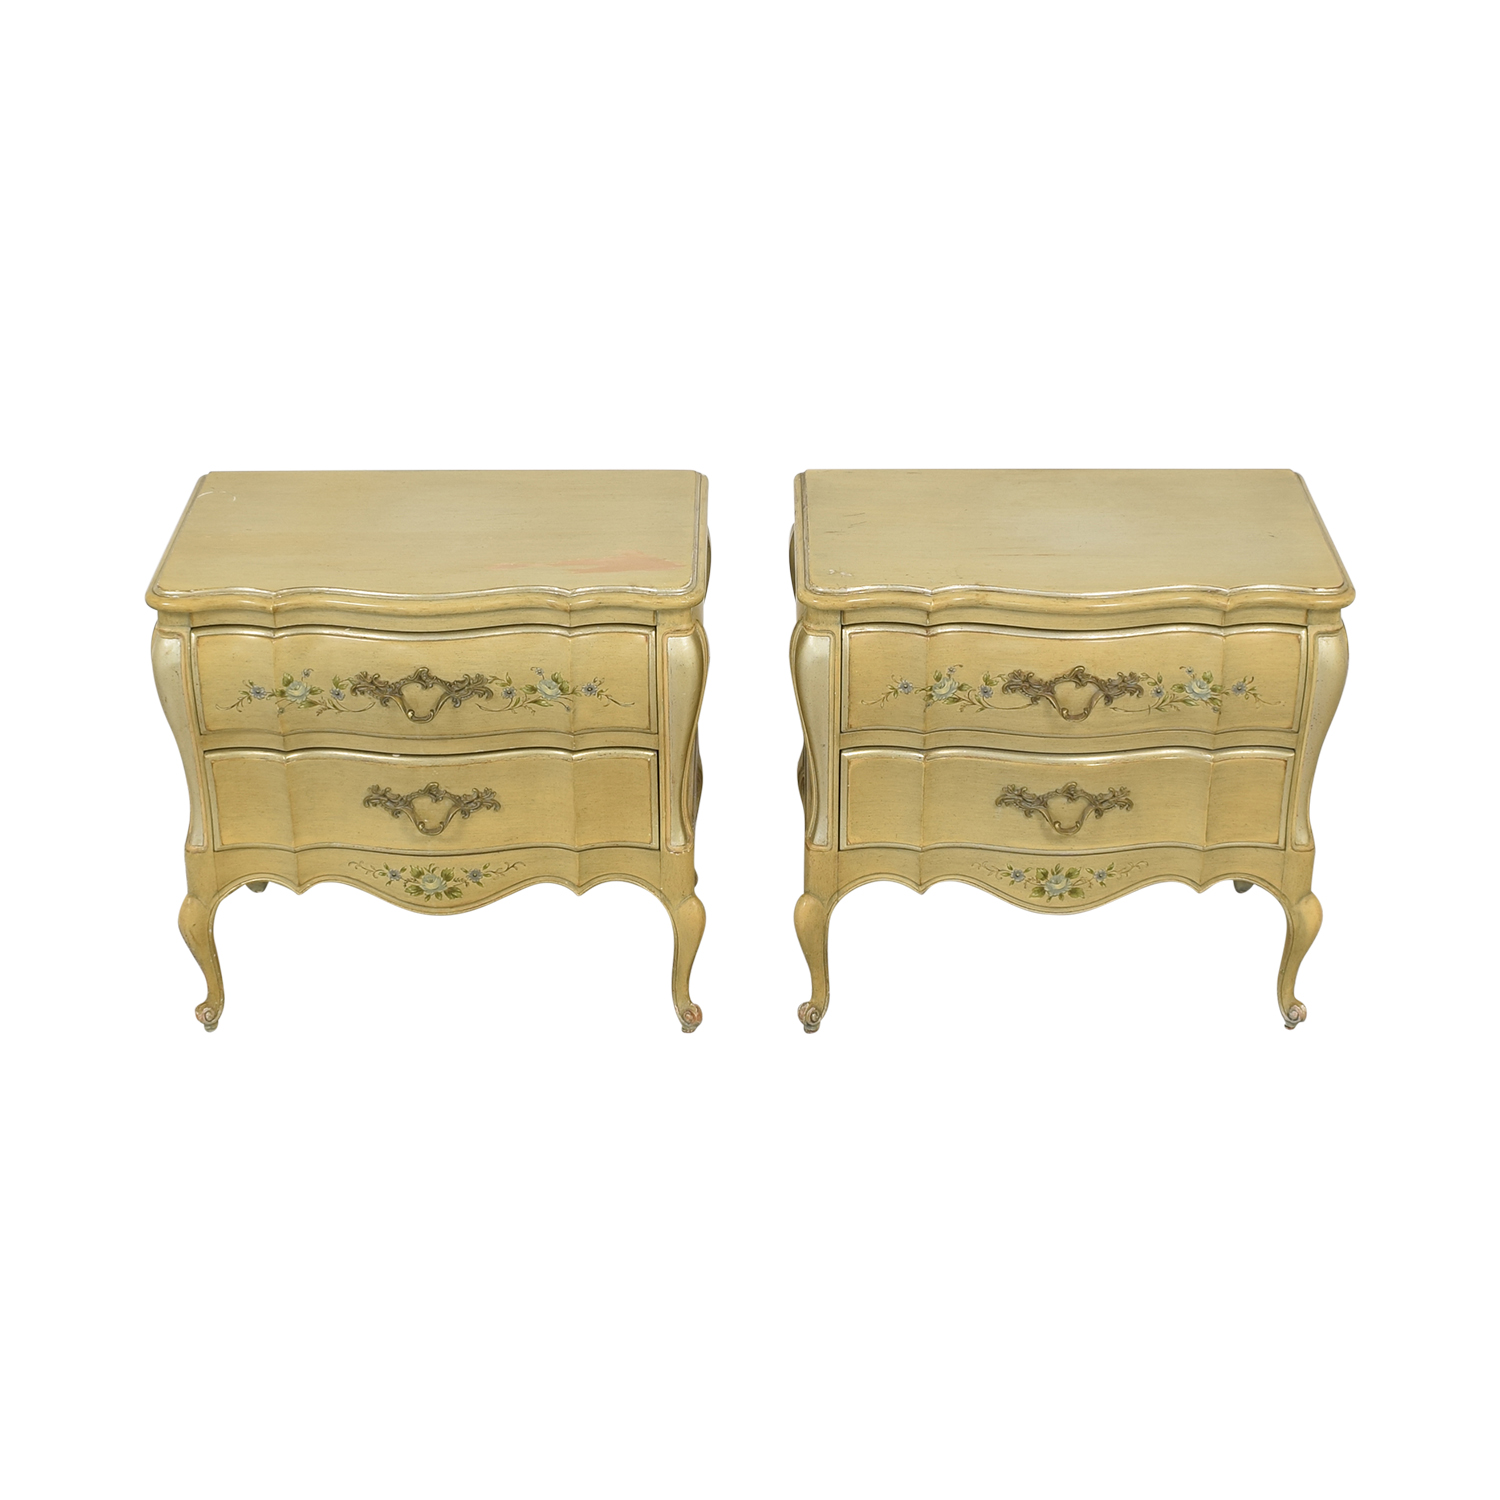 Rucker Industries Rucker Industries Dixon Powdermaker French Provincial Style Nightstands nyc